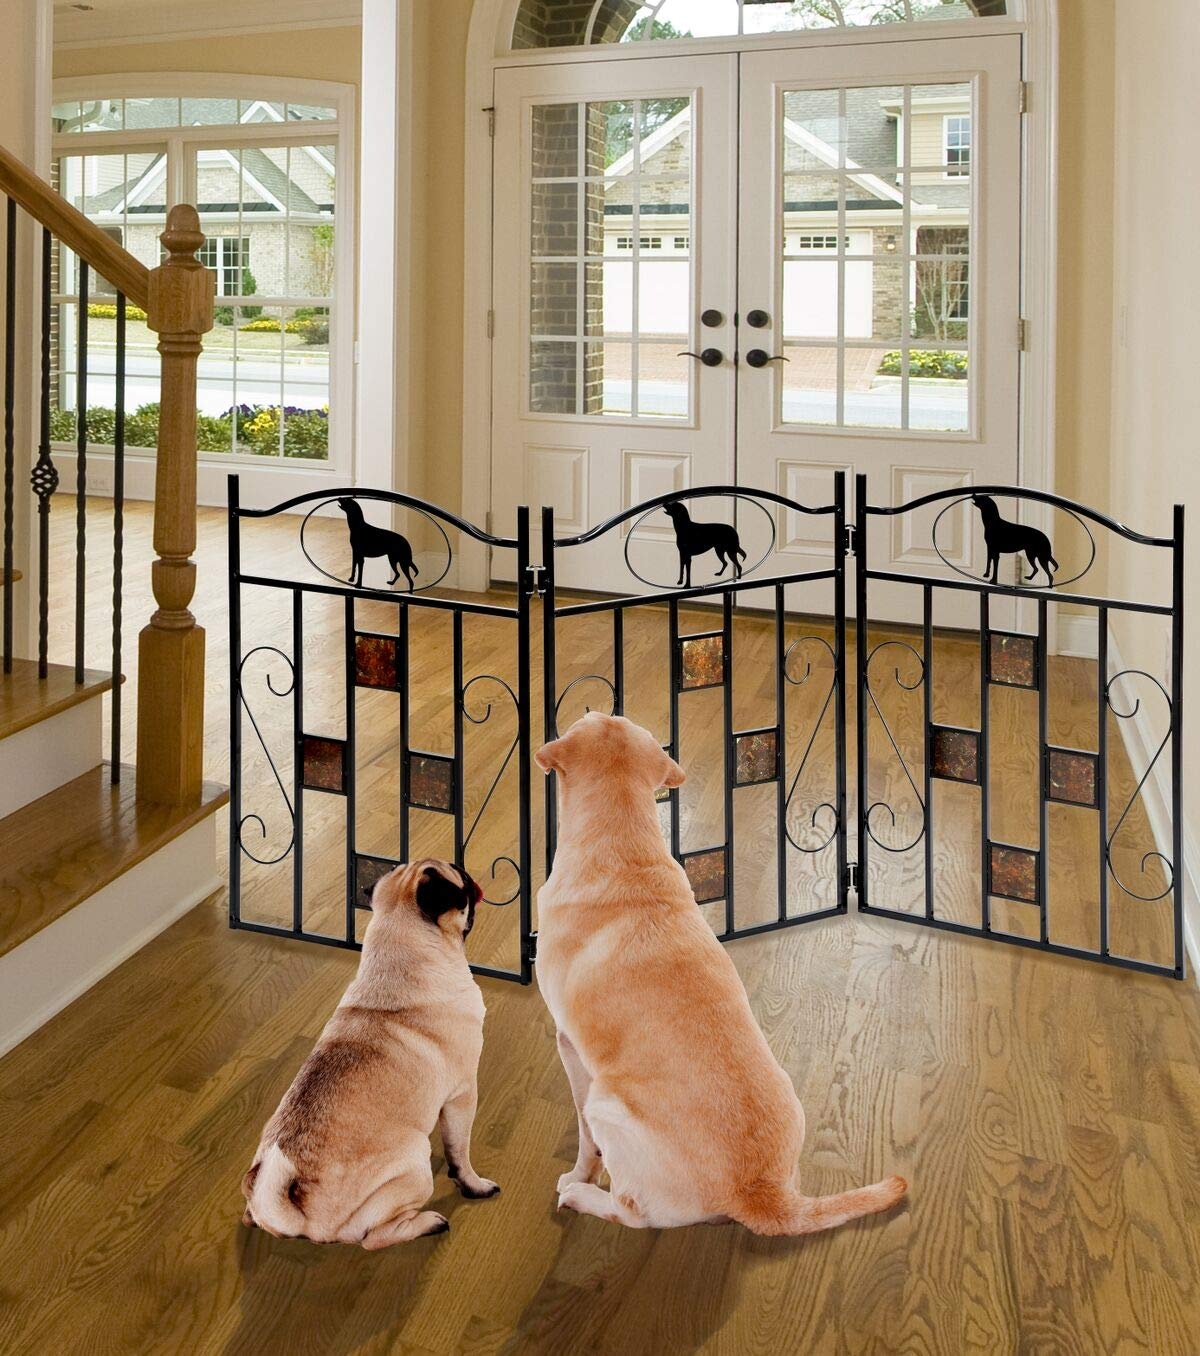 Artistic Design Adjustable Folding Metal Pet Gate Freestanding Extended Size 50 W x 23.5 H